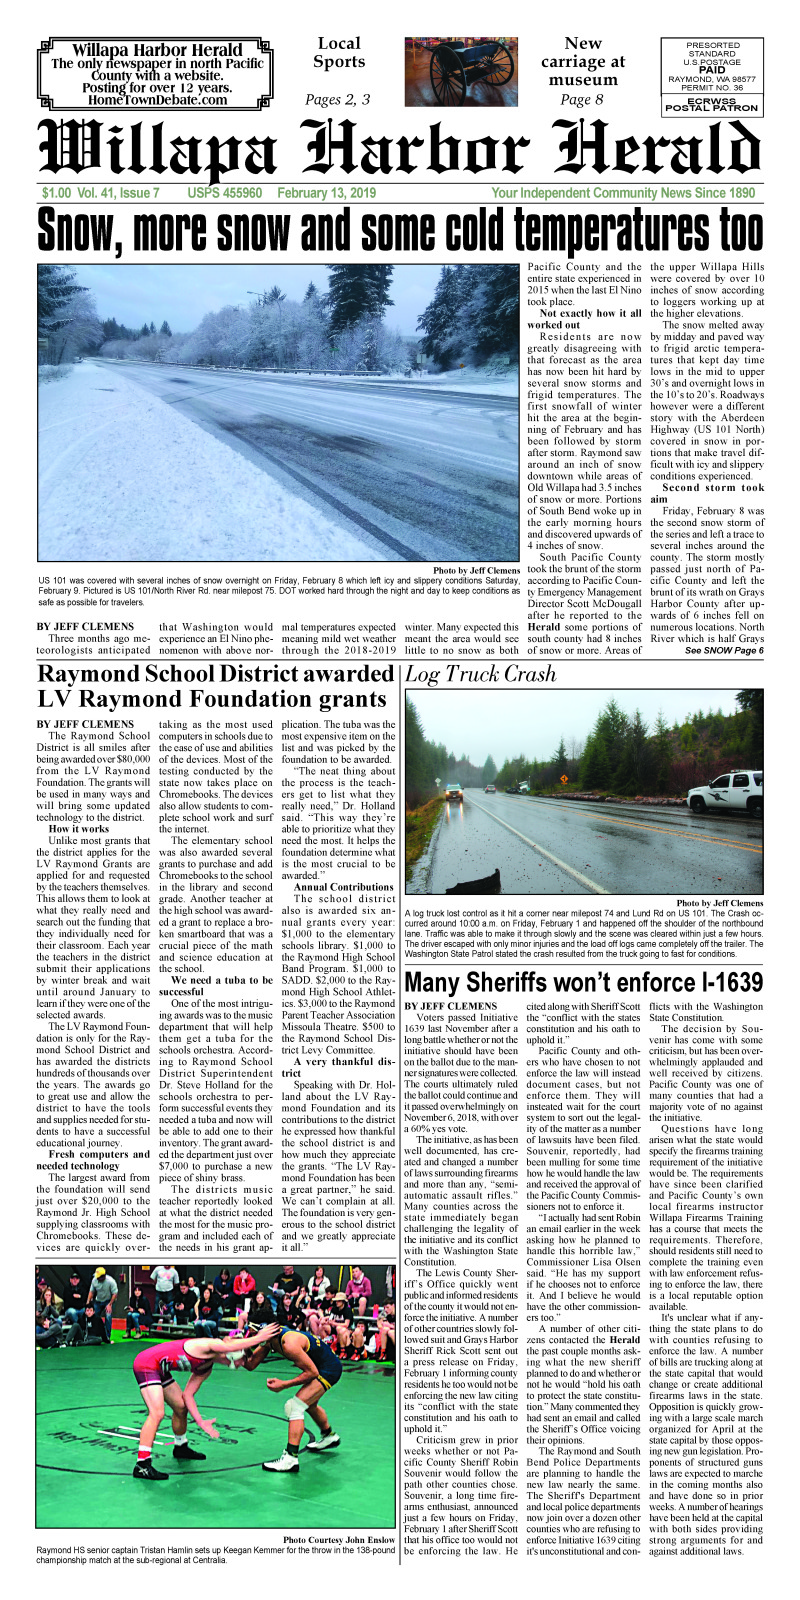 February 13, 2019 Willapa Harbor Herald